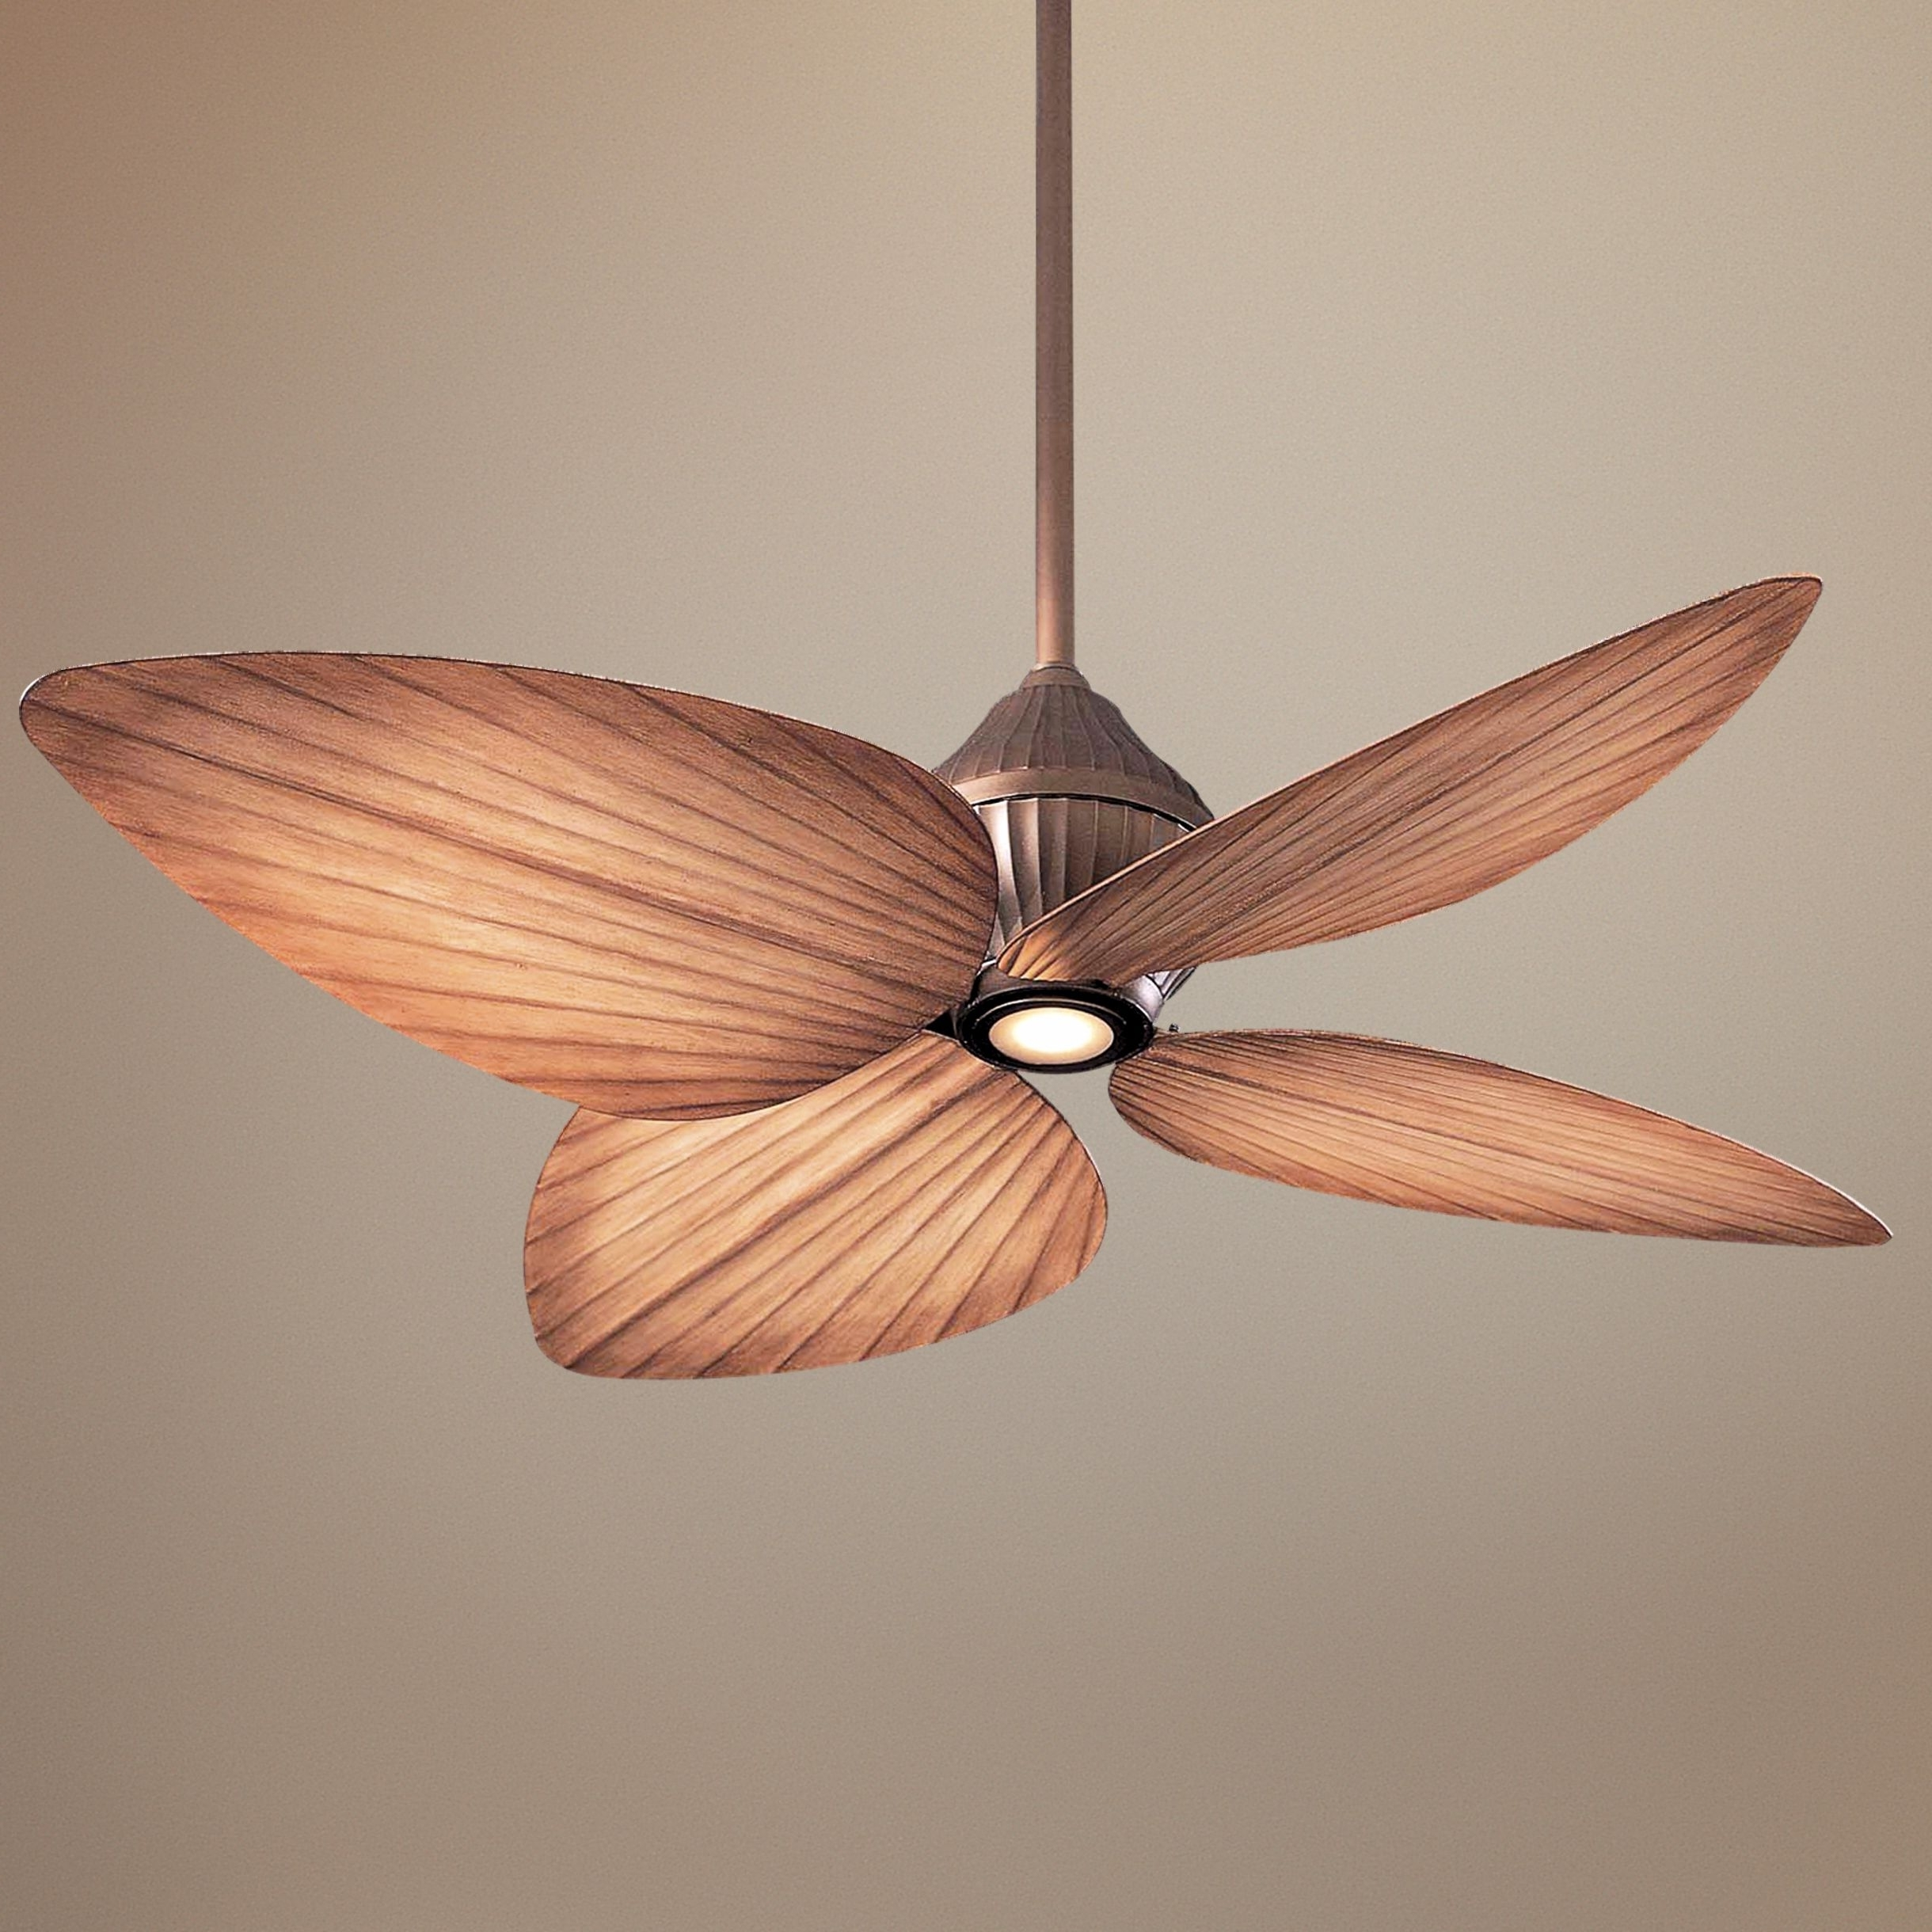 Outdoor Ceiling Fans With Bamboo Blades Regarding Most Recently Released Ceiling: Stunning Palm Leaf Ceiling Fan Wicker Ceiling Fans, Bamboo (View 20 of 20)